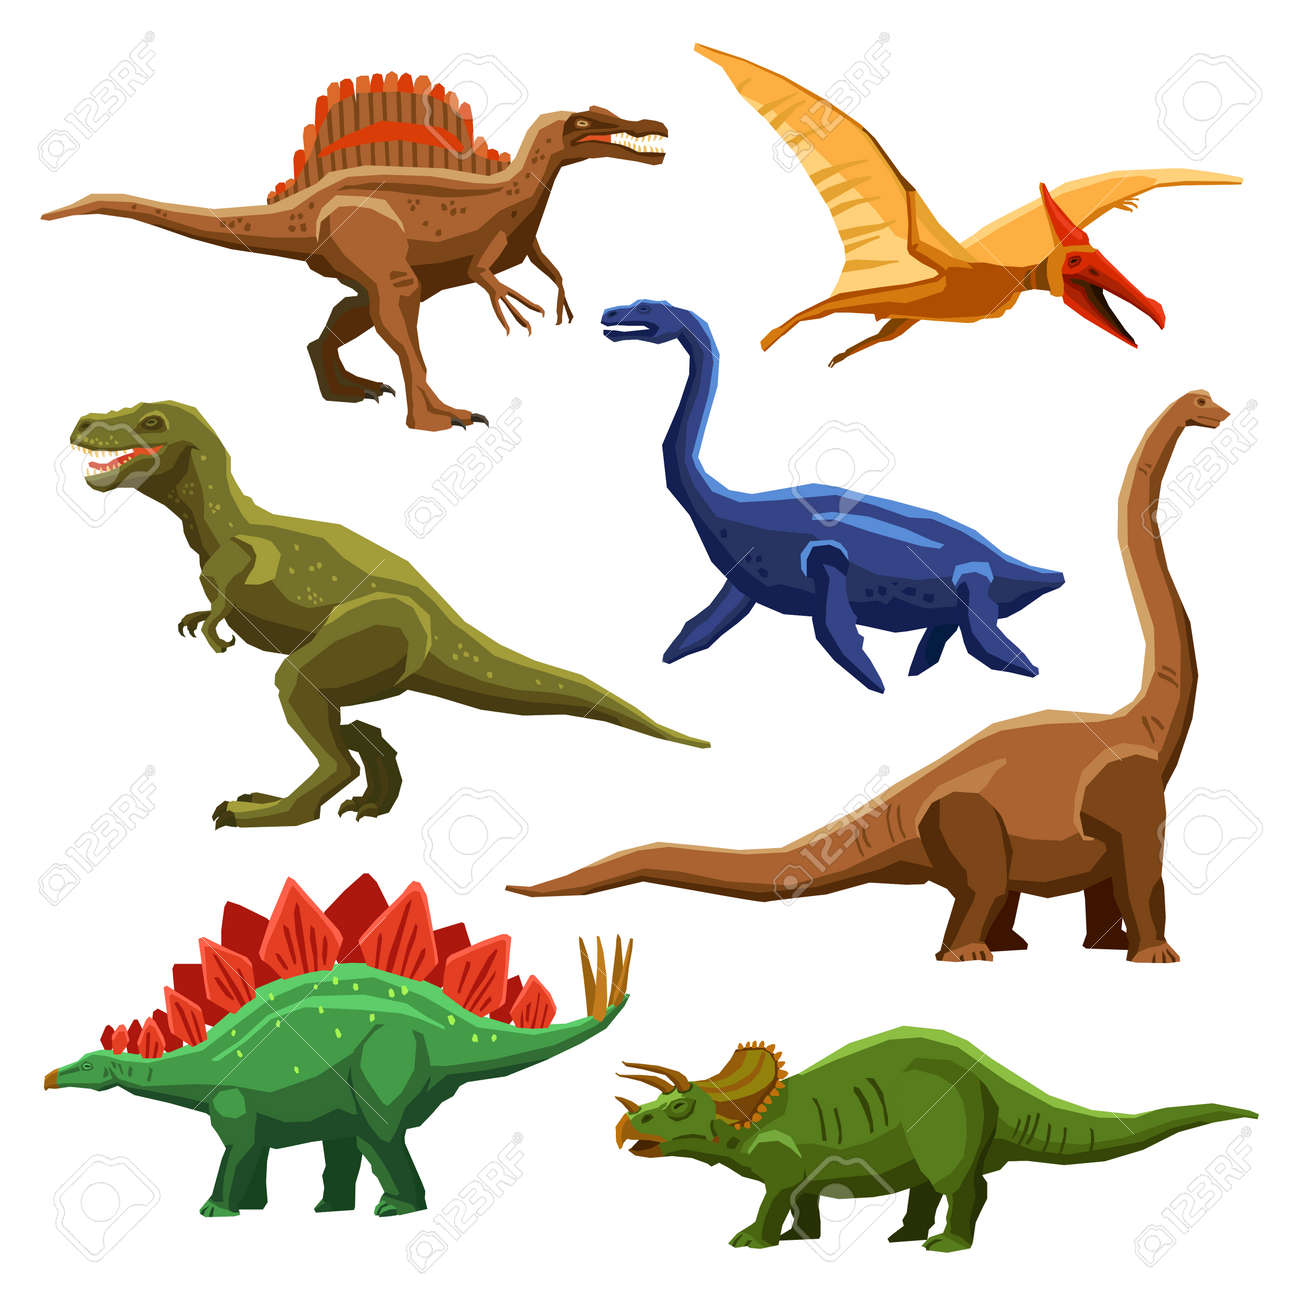 Dinosaurs color icons set in cartoon style on white background isolated vector illustration - 165585780